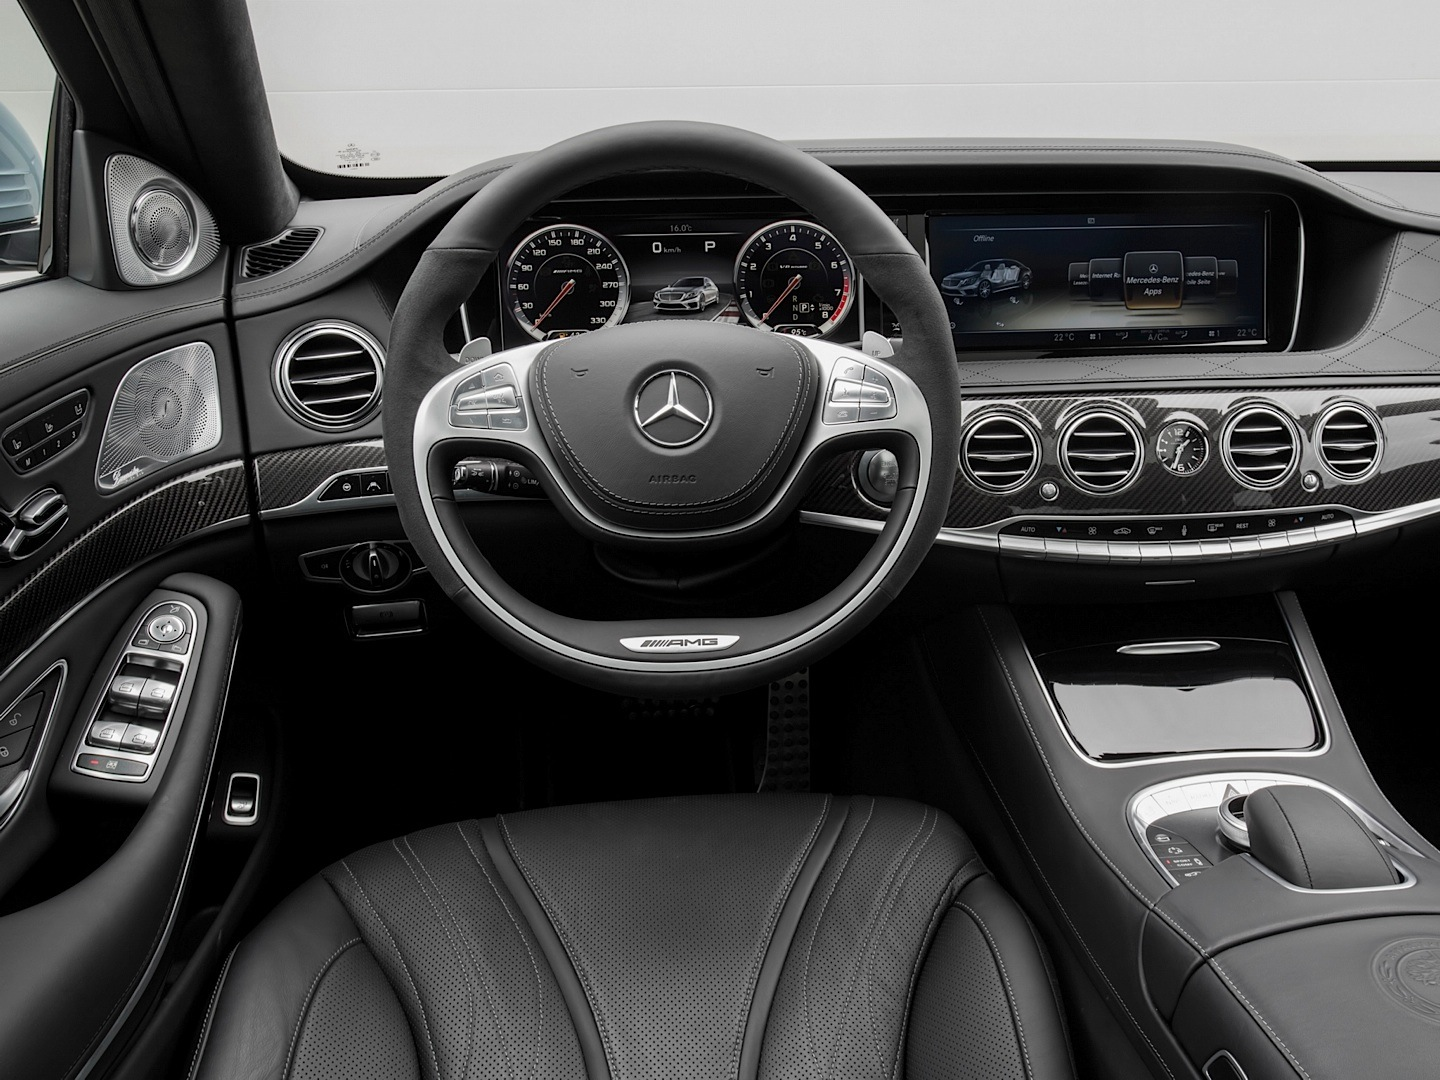 The Mercedes Benz S63 AMG Gets Its Pricing Sorted Out For